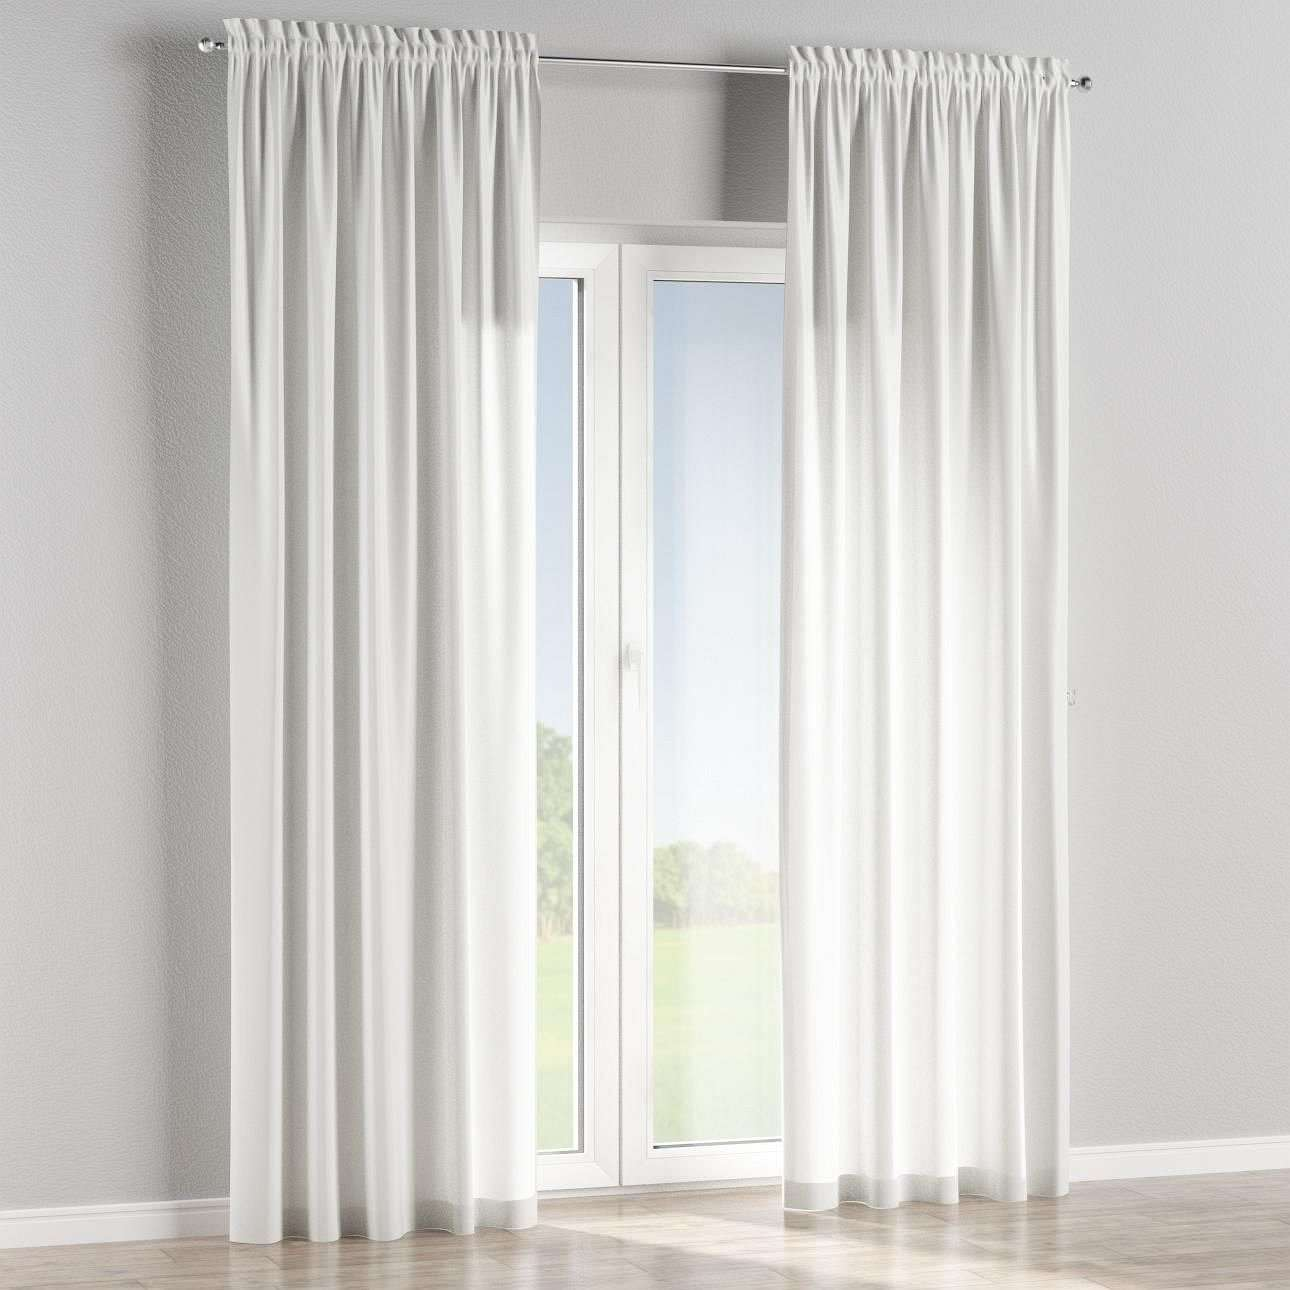 Slot and frill curtains in collection SALE, fabric: 130-10